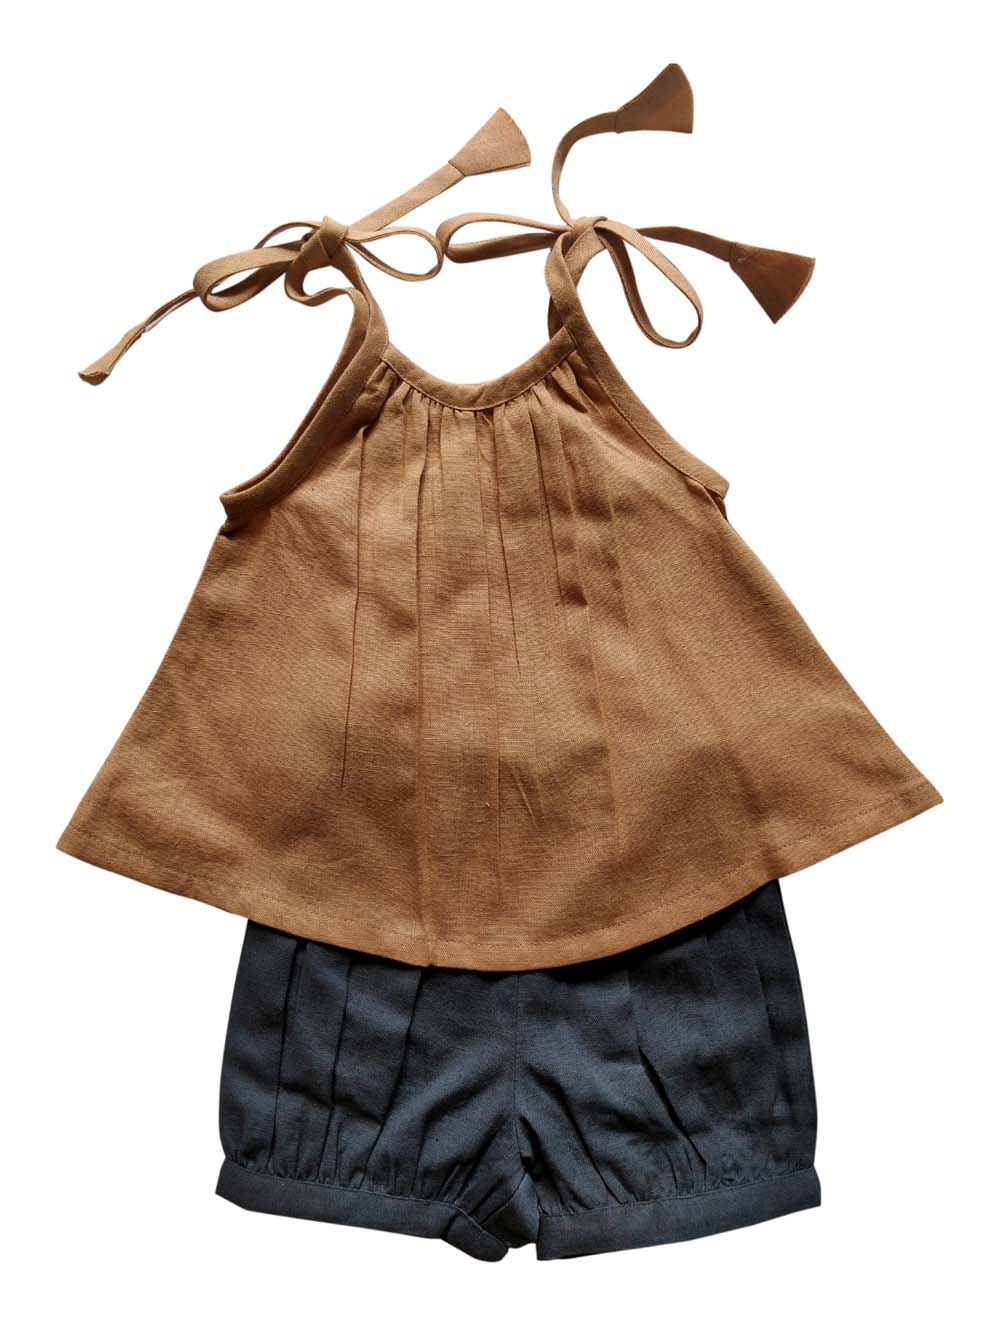 Ochre Tie-Top & Grey Diaper Cover 2pc.set